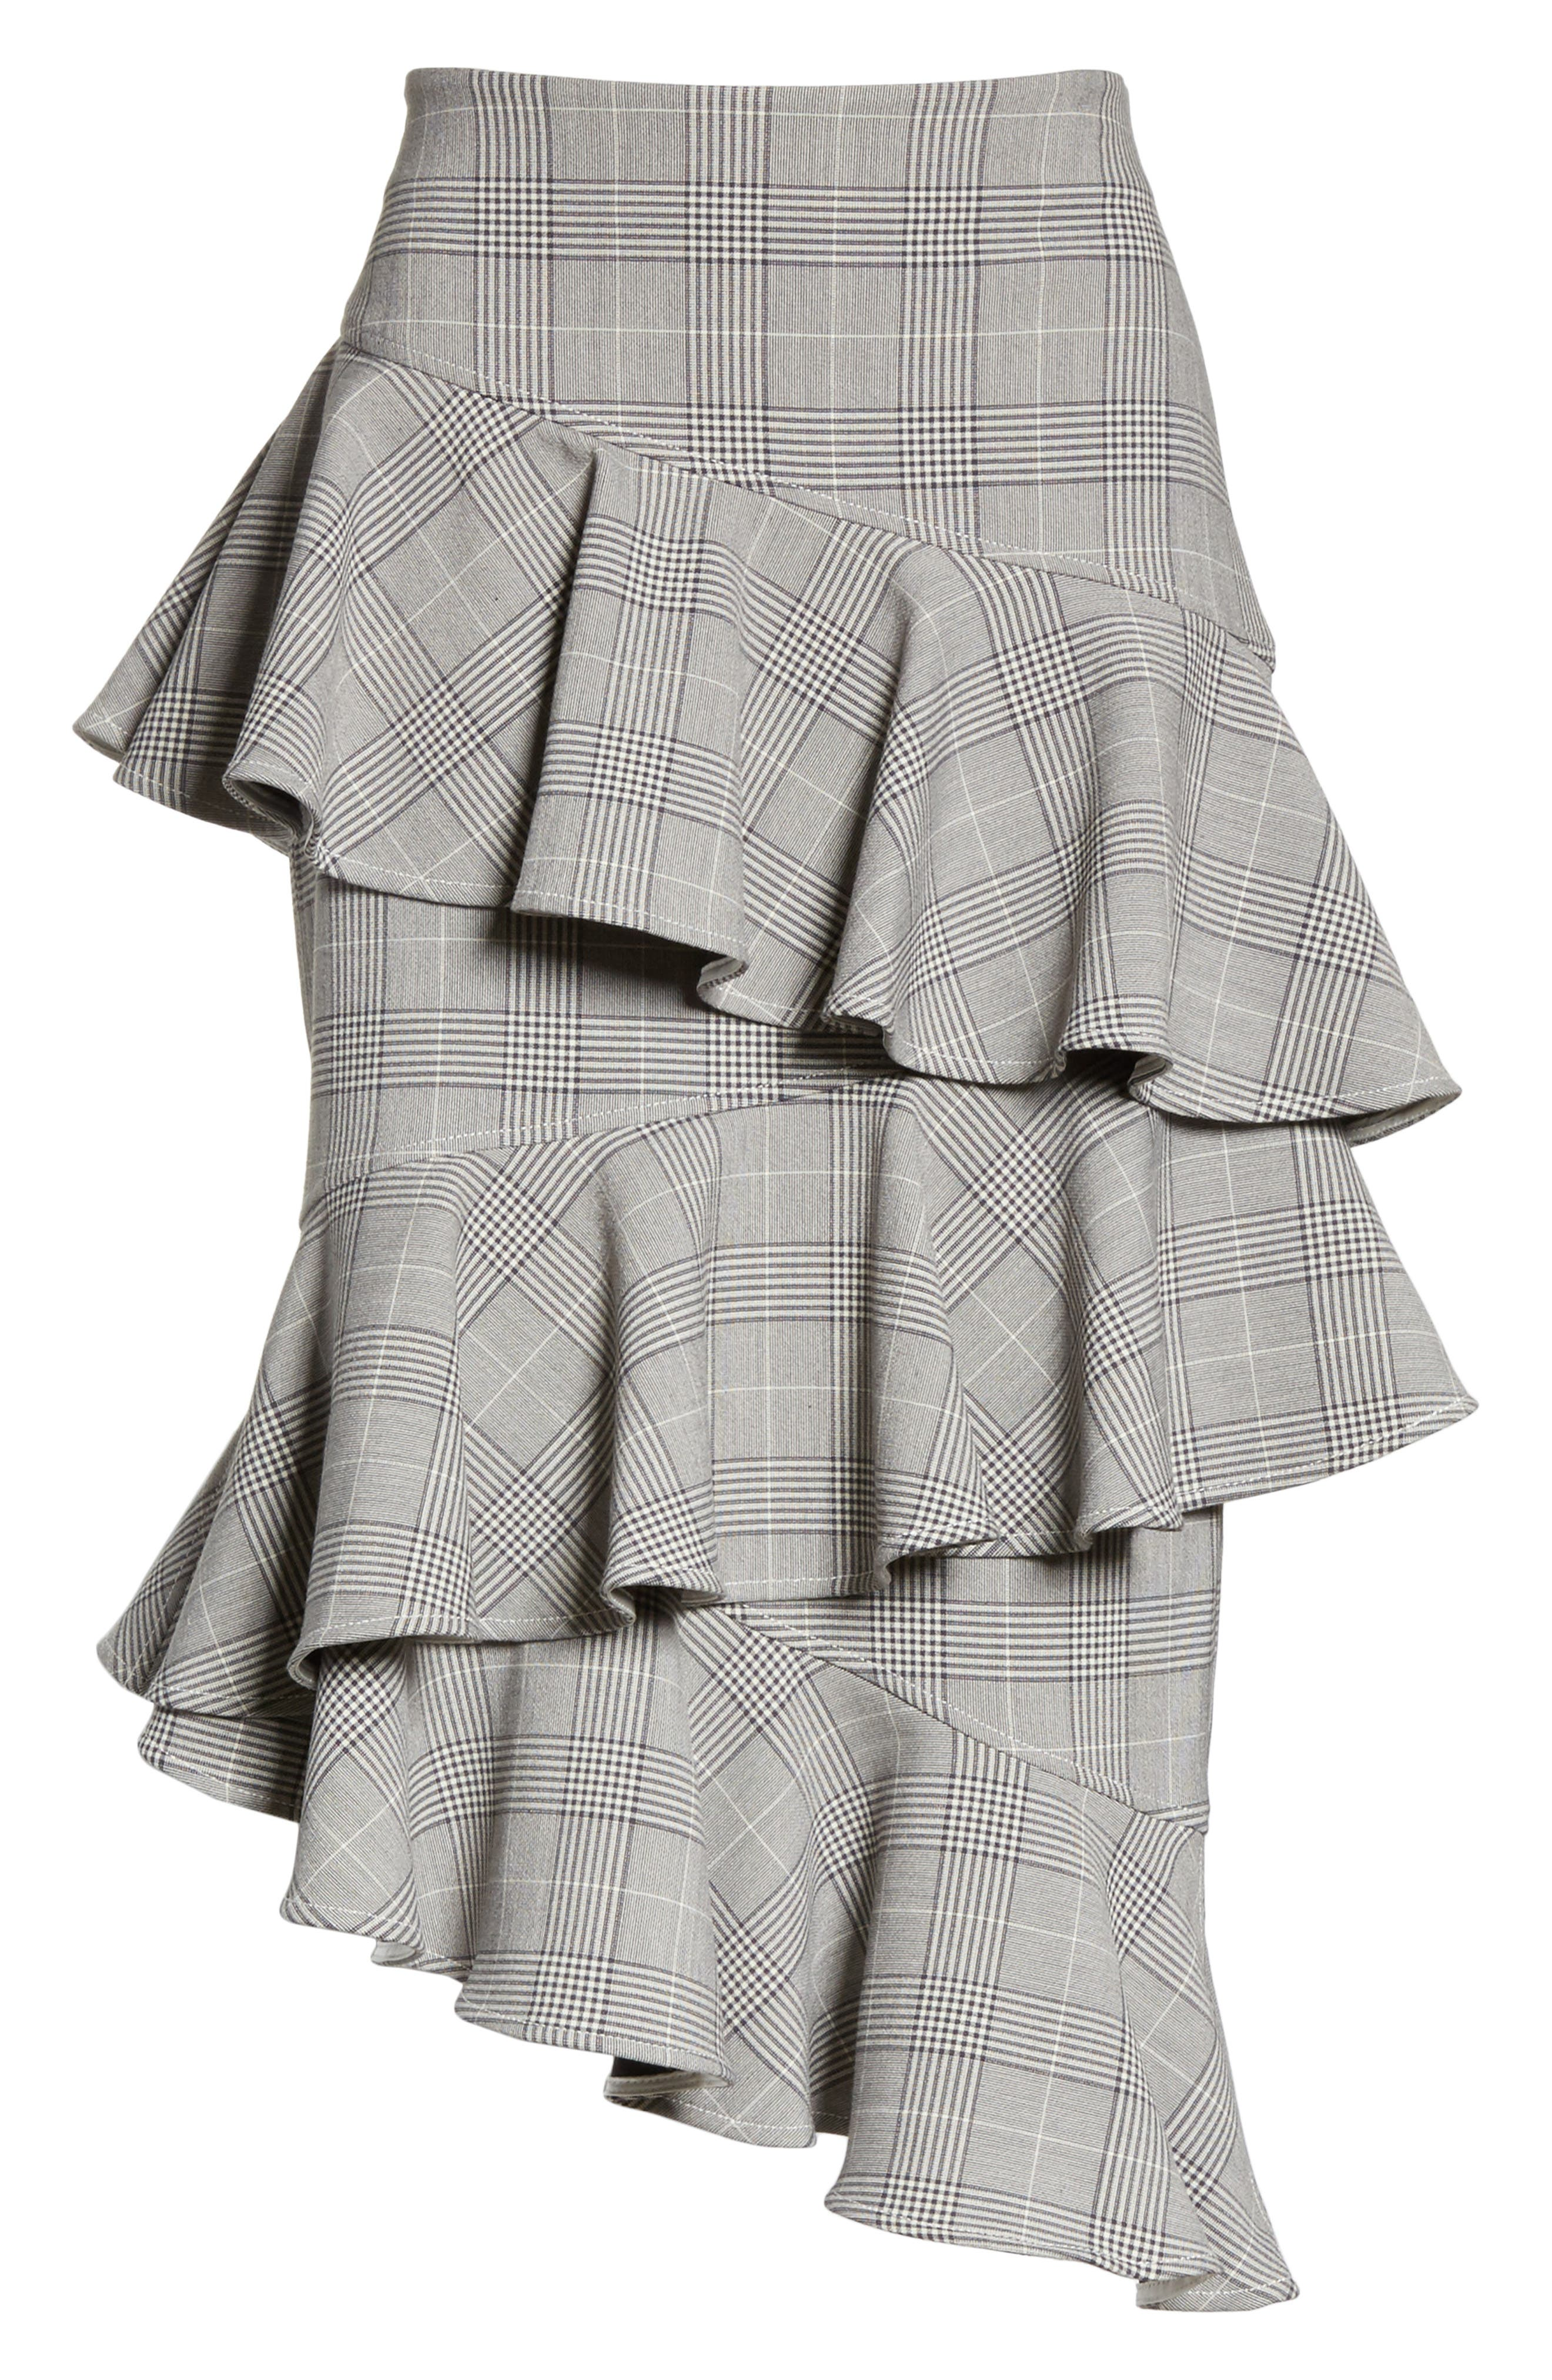 Garvey Plaid Ruffle Tier Skirt,                             Alternate thumbnail 6, color,                             Paloma Melange